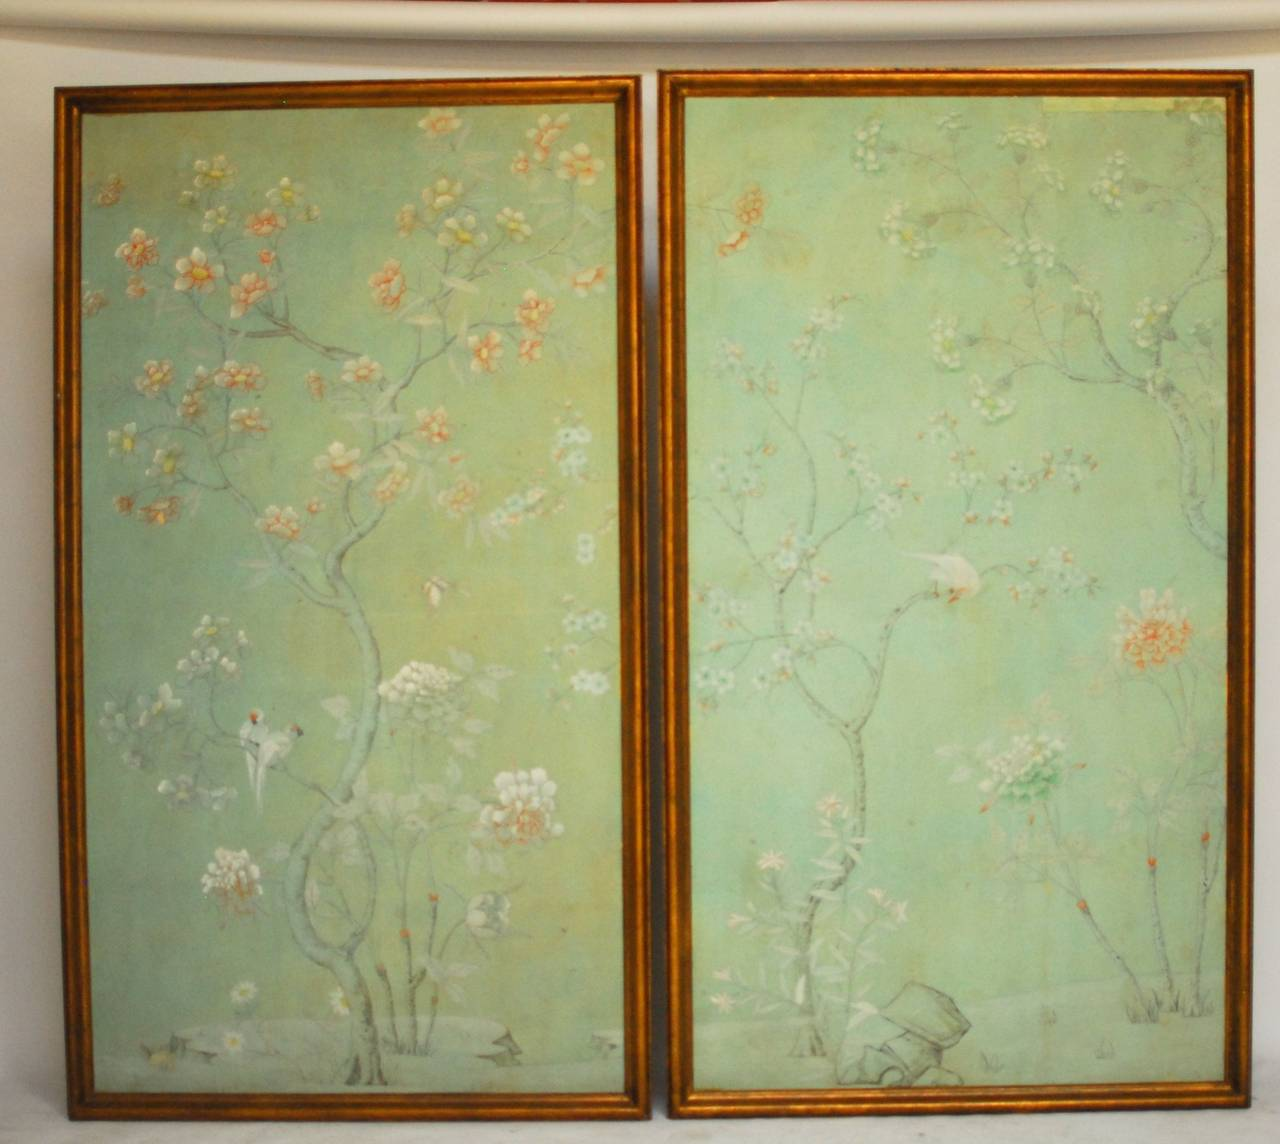 Pair of Chinoiserie Wallpaper Panels For Sale at 1stdibs 1280x1144